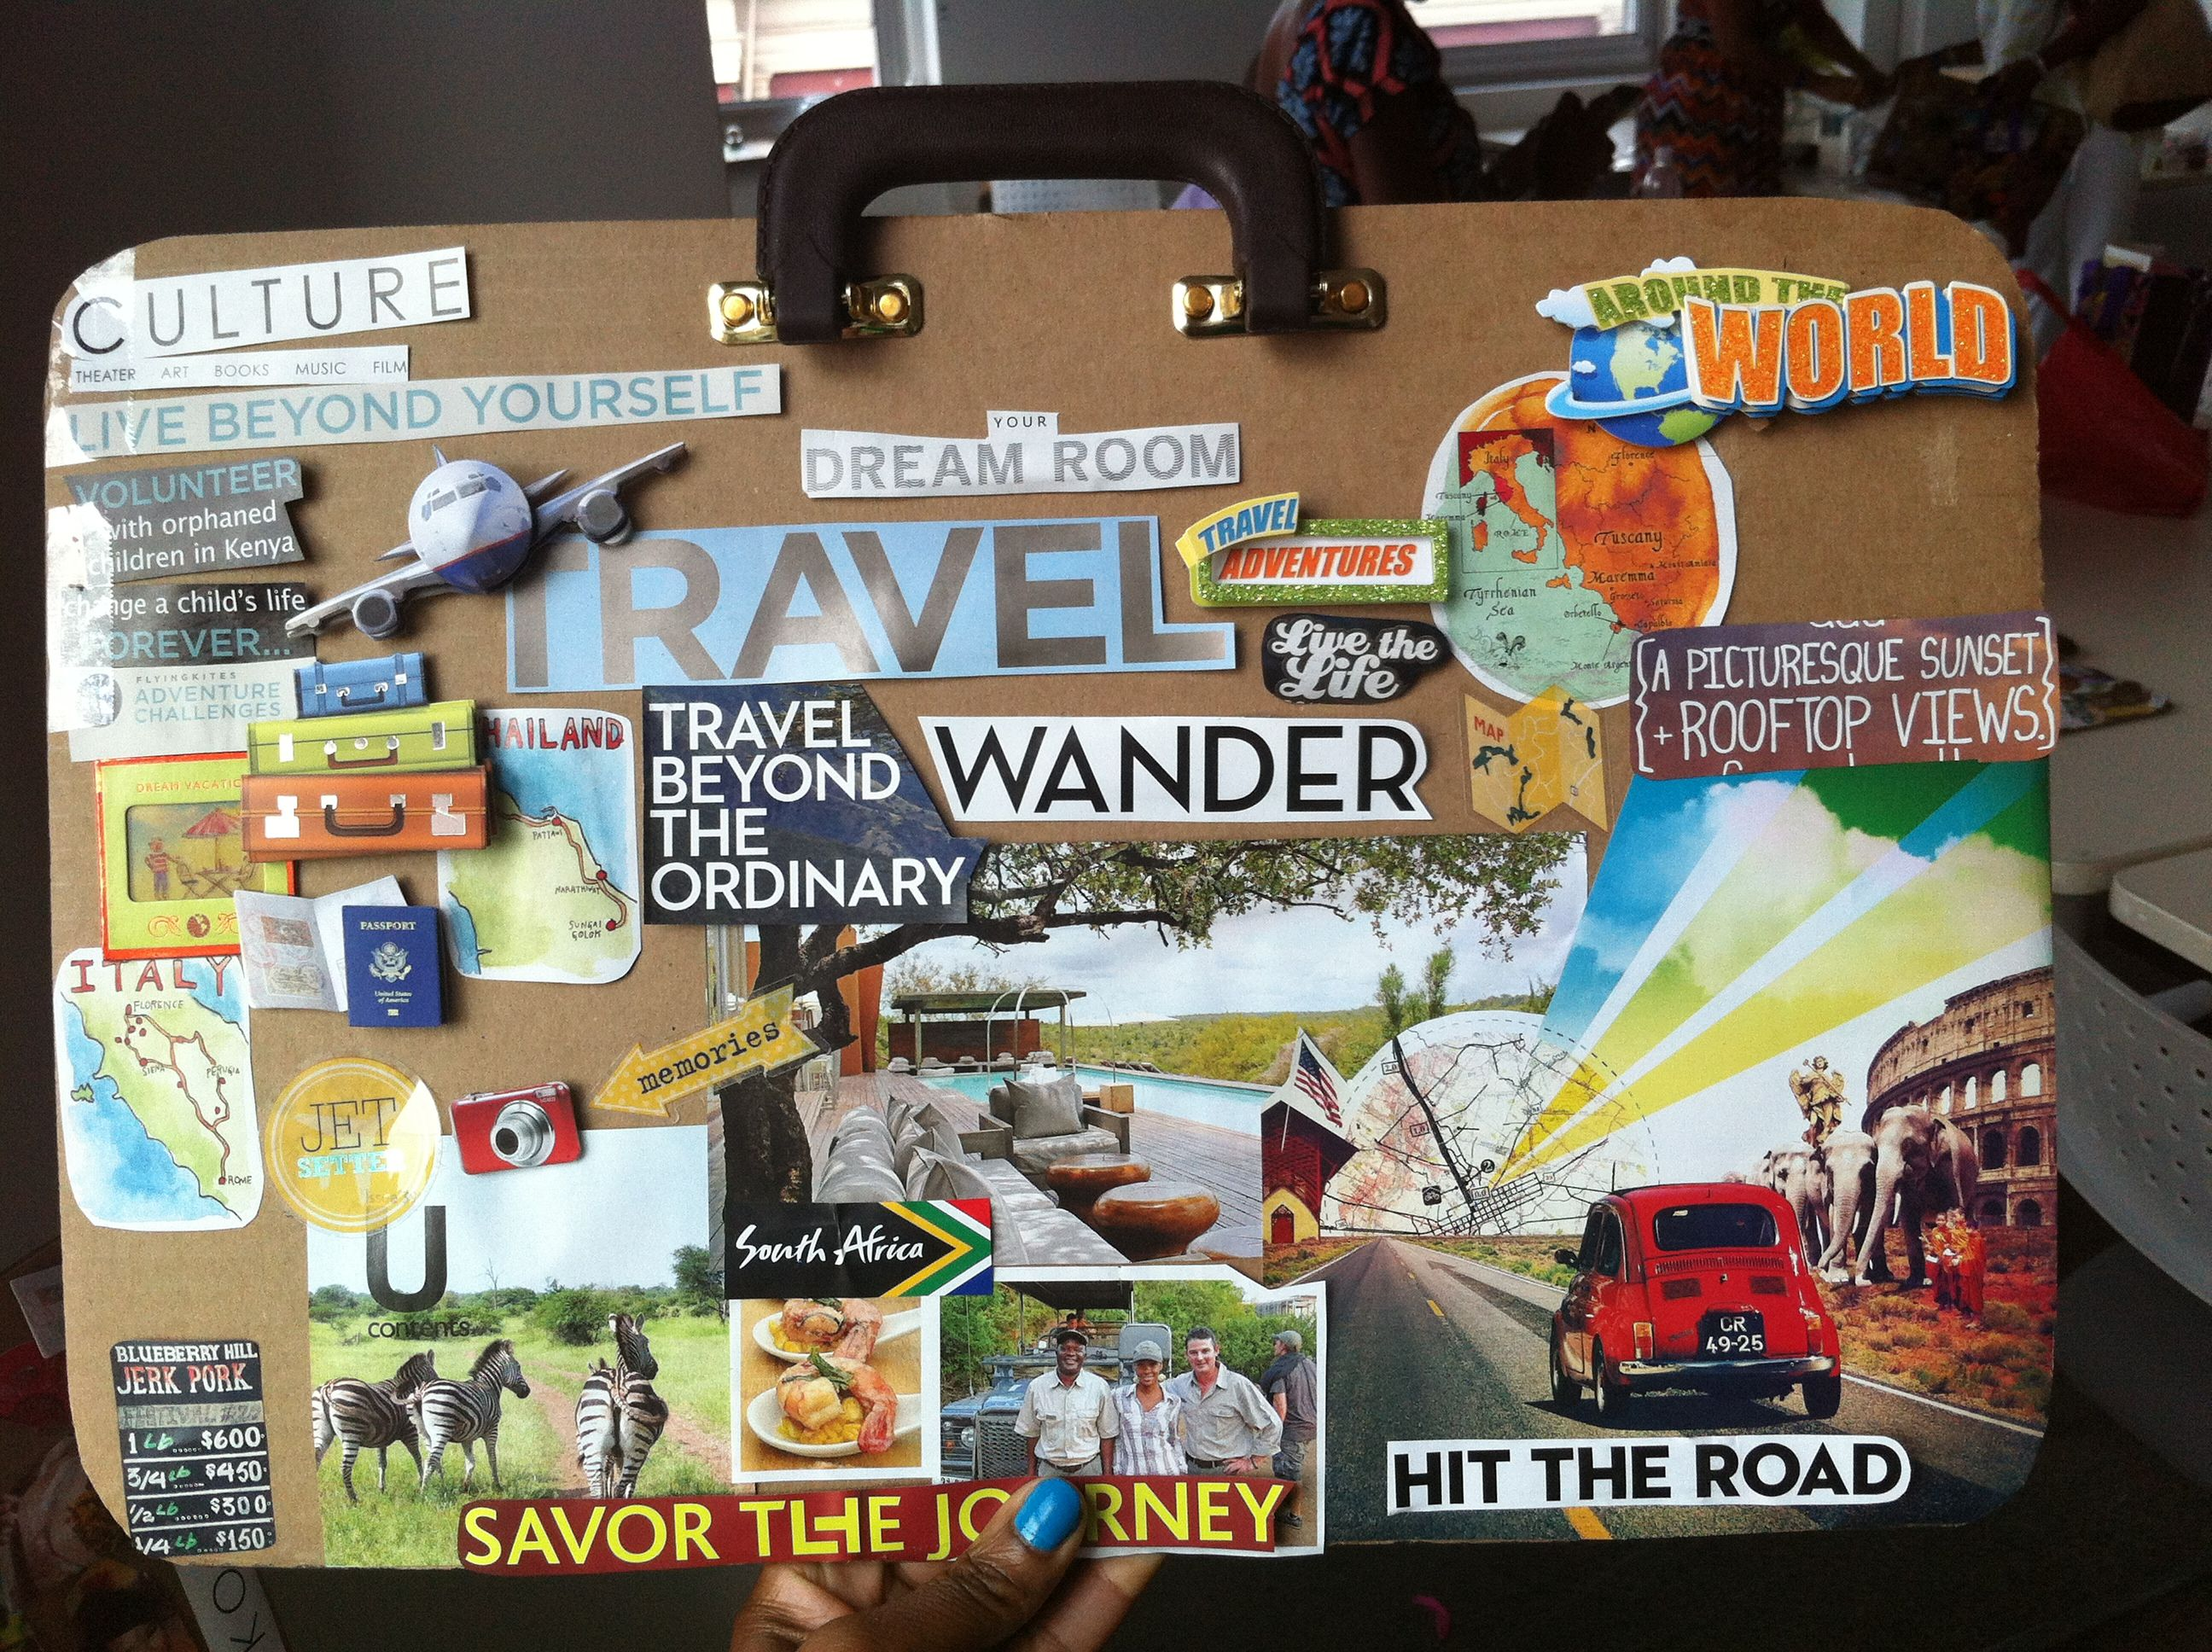 tracey colemans vision board at ny passport party project